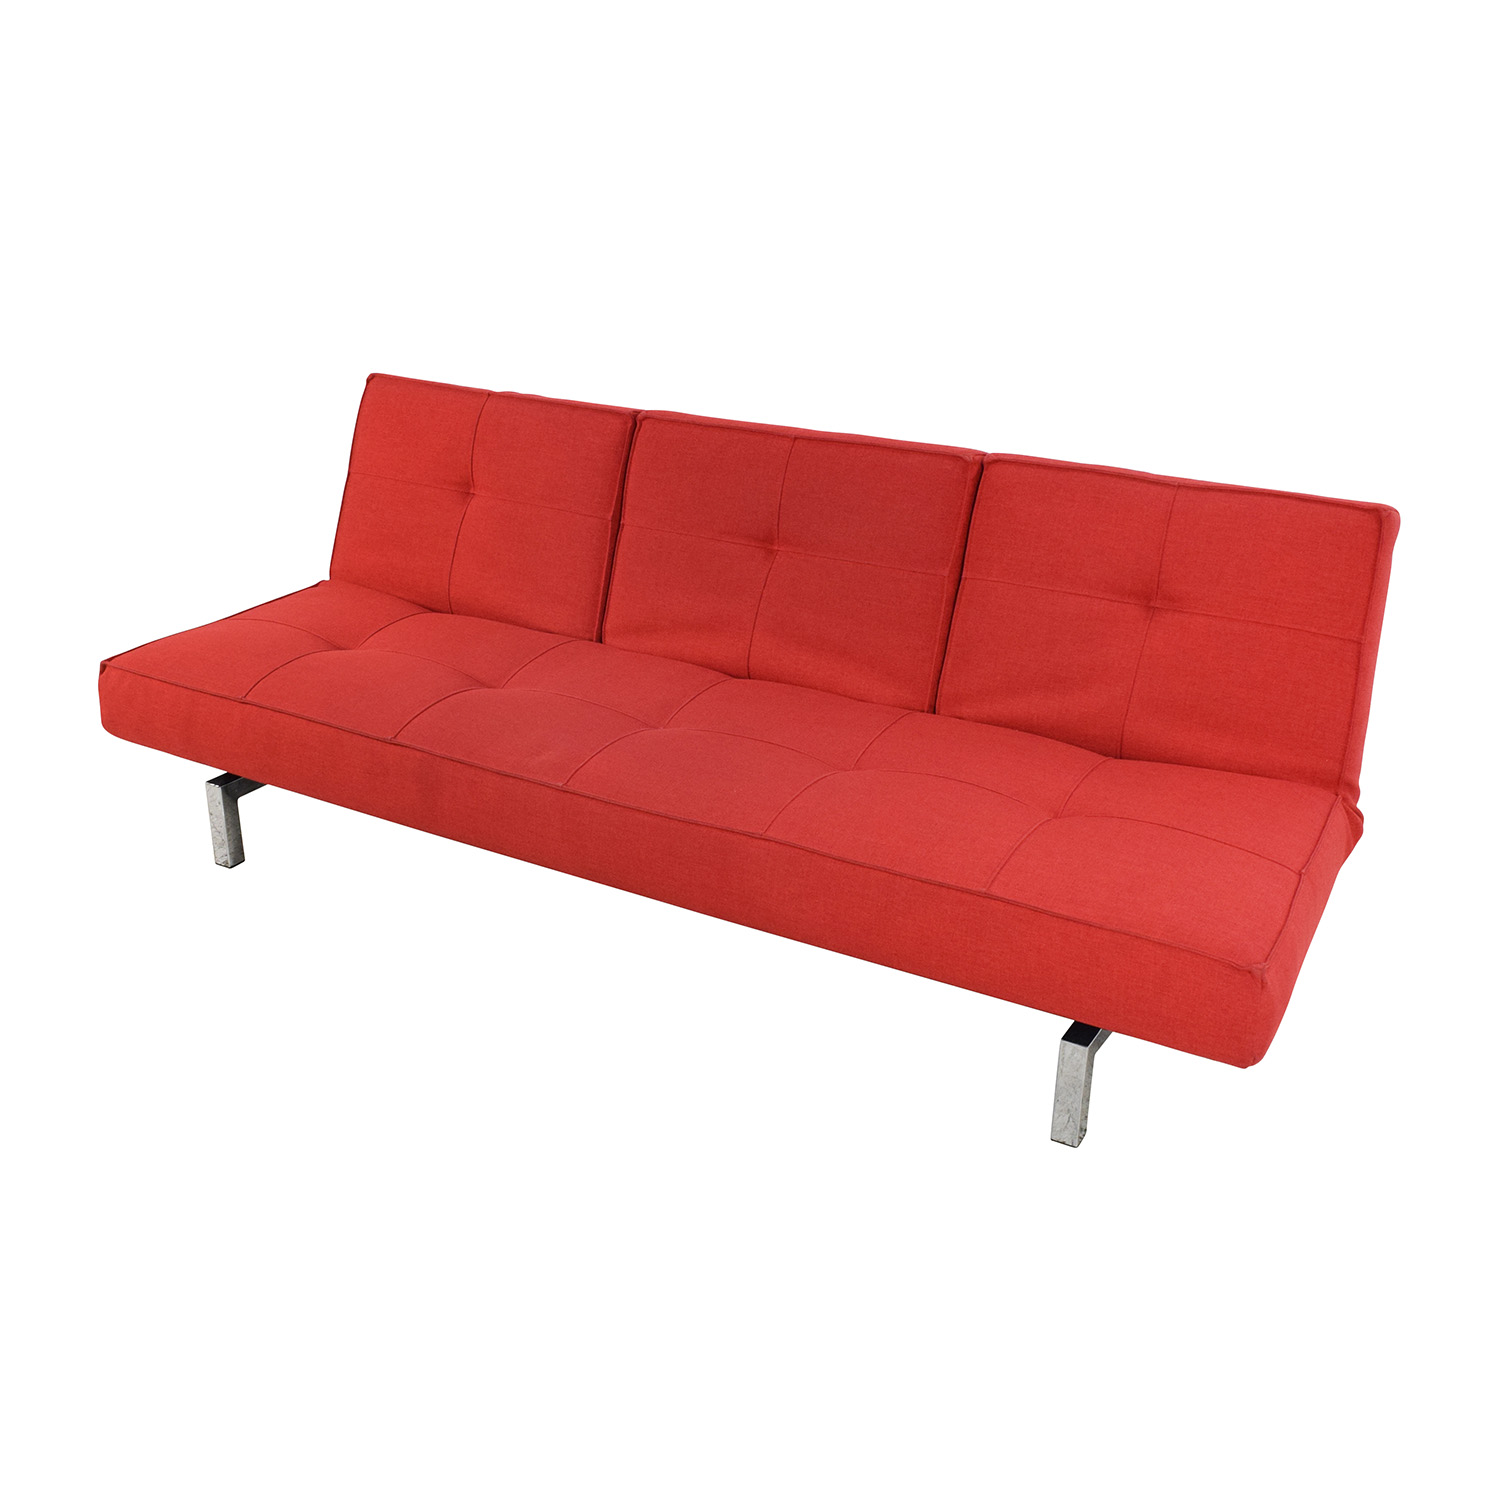 Room & Board Eden Convertible Red Sofa sale